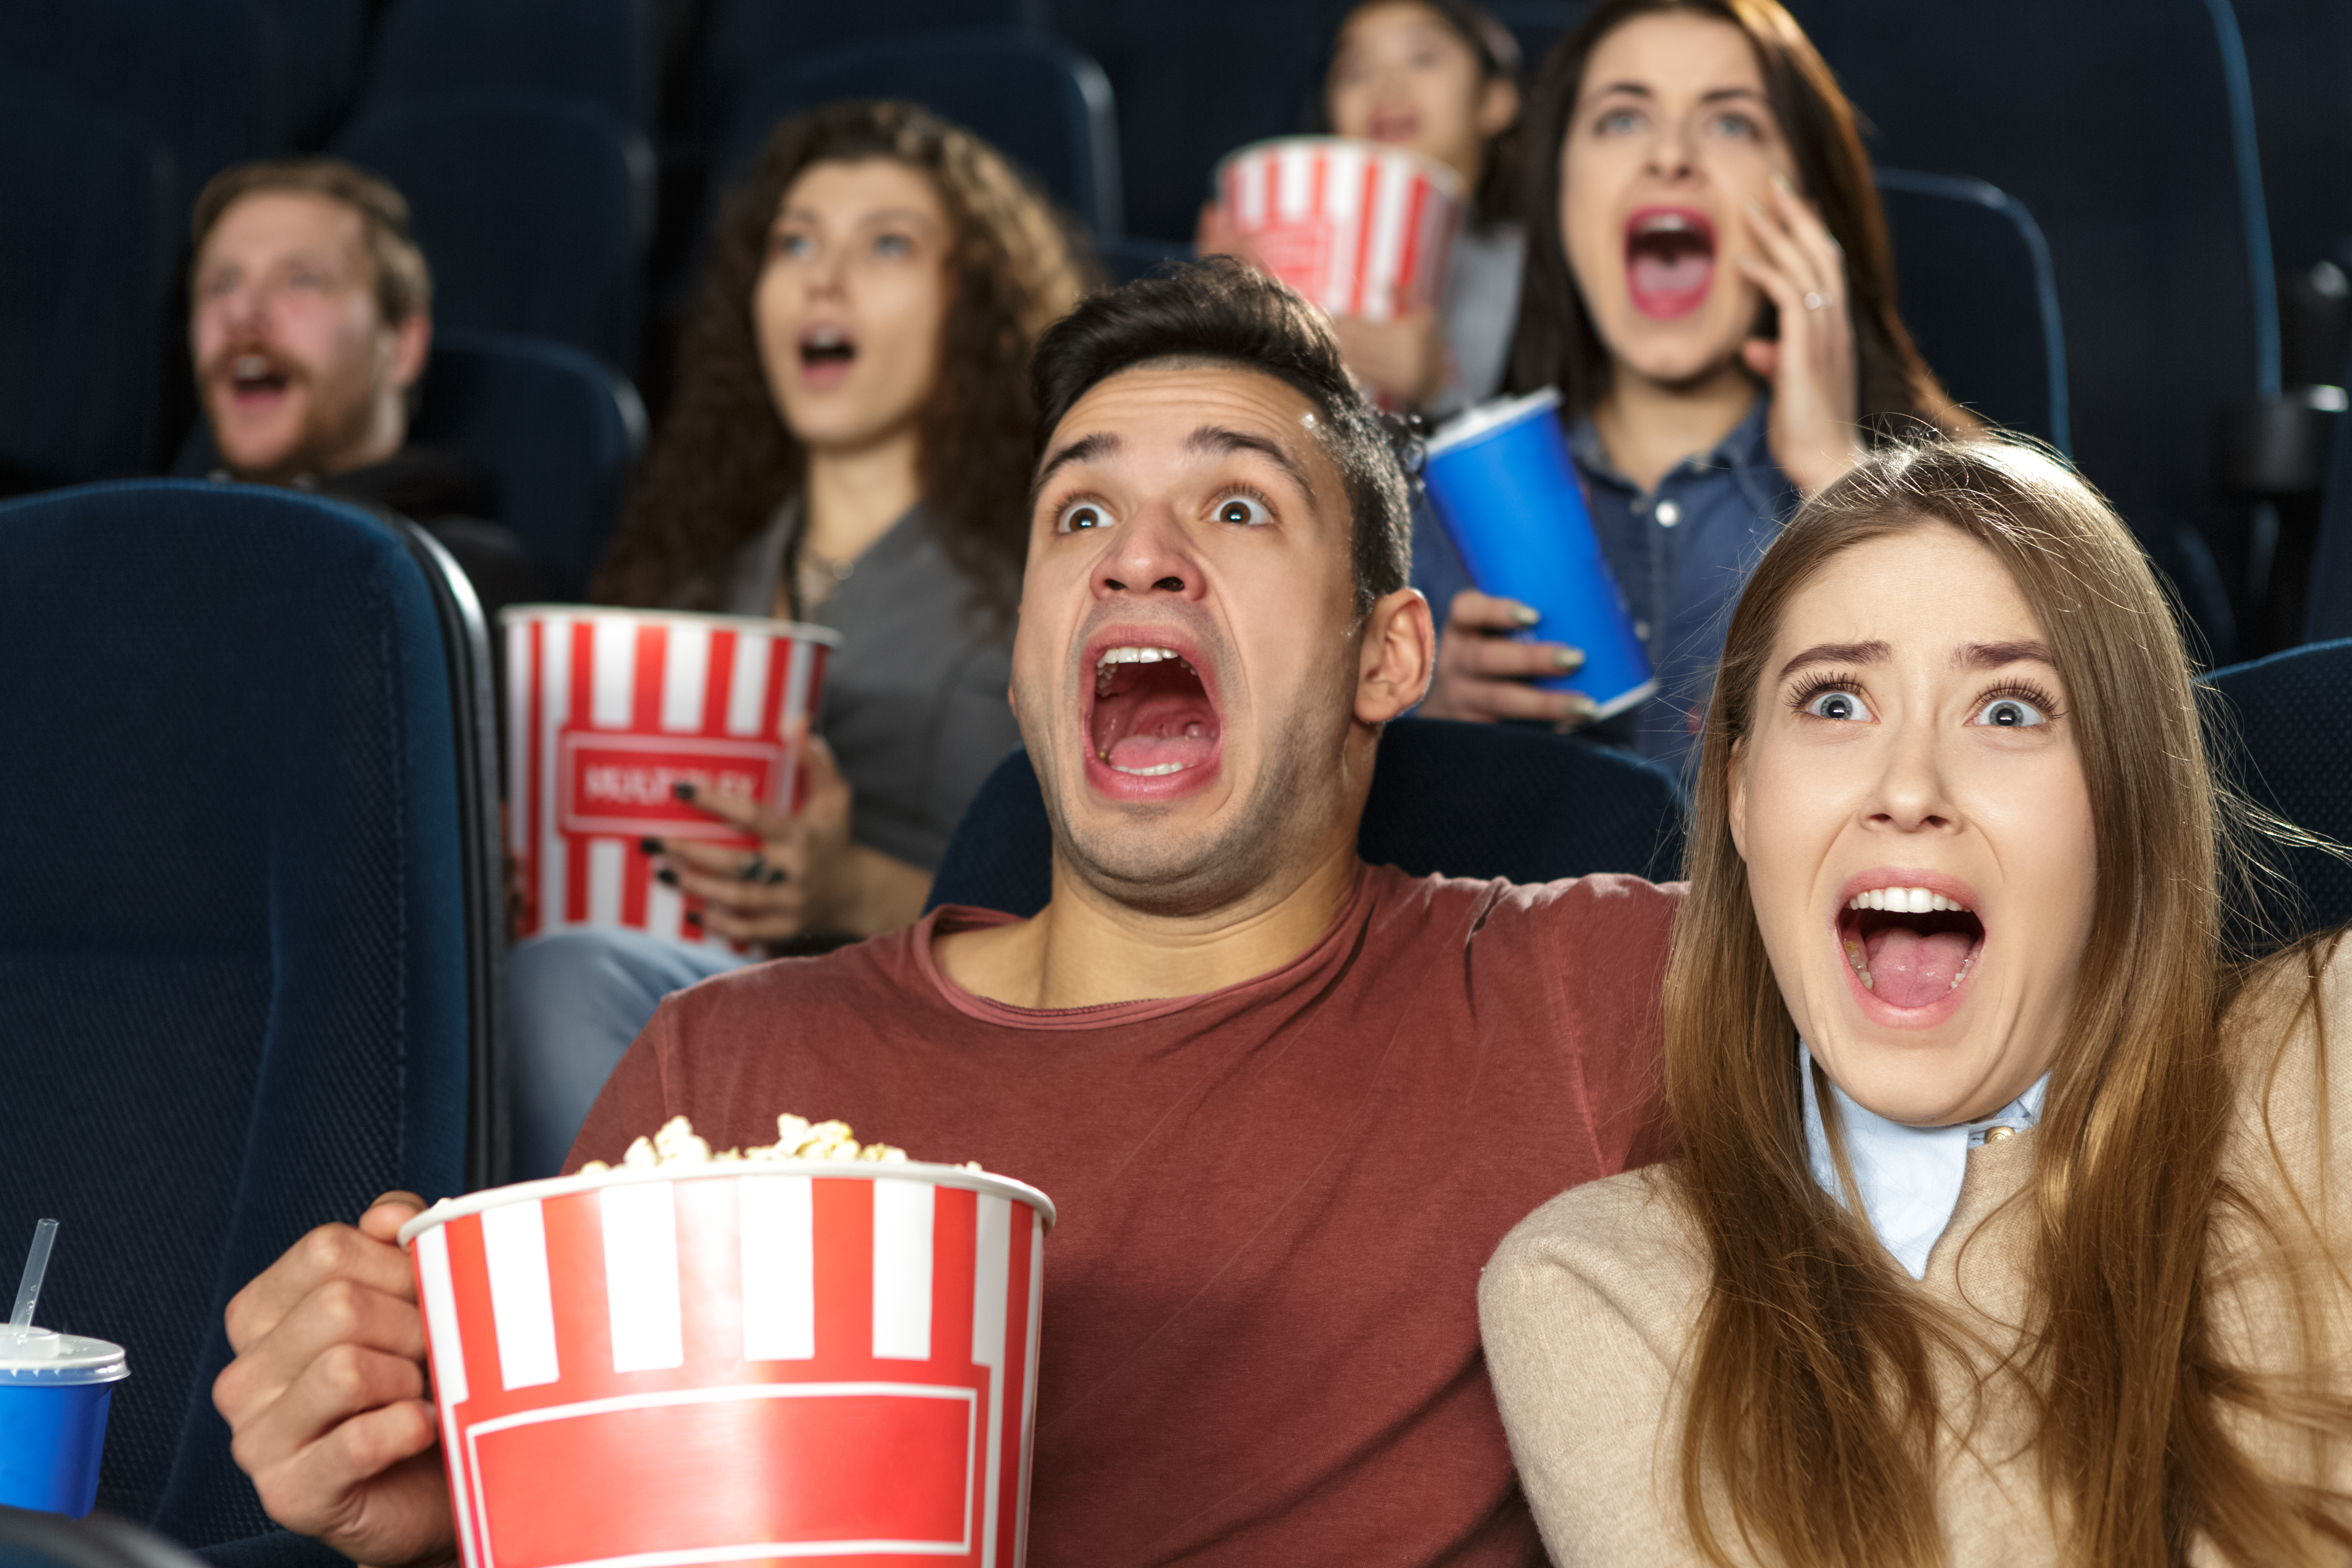 scared movie audience